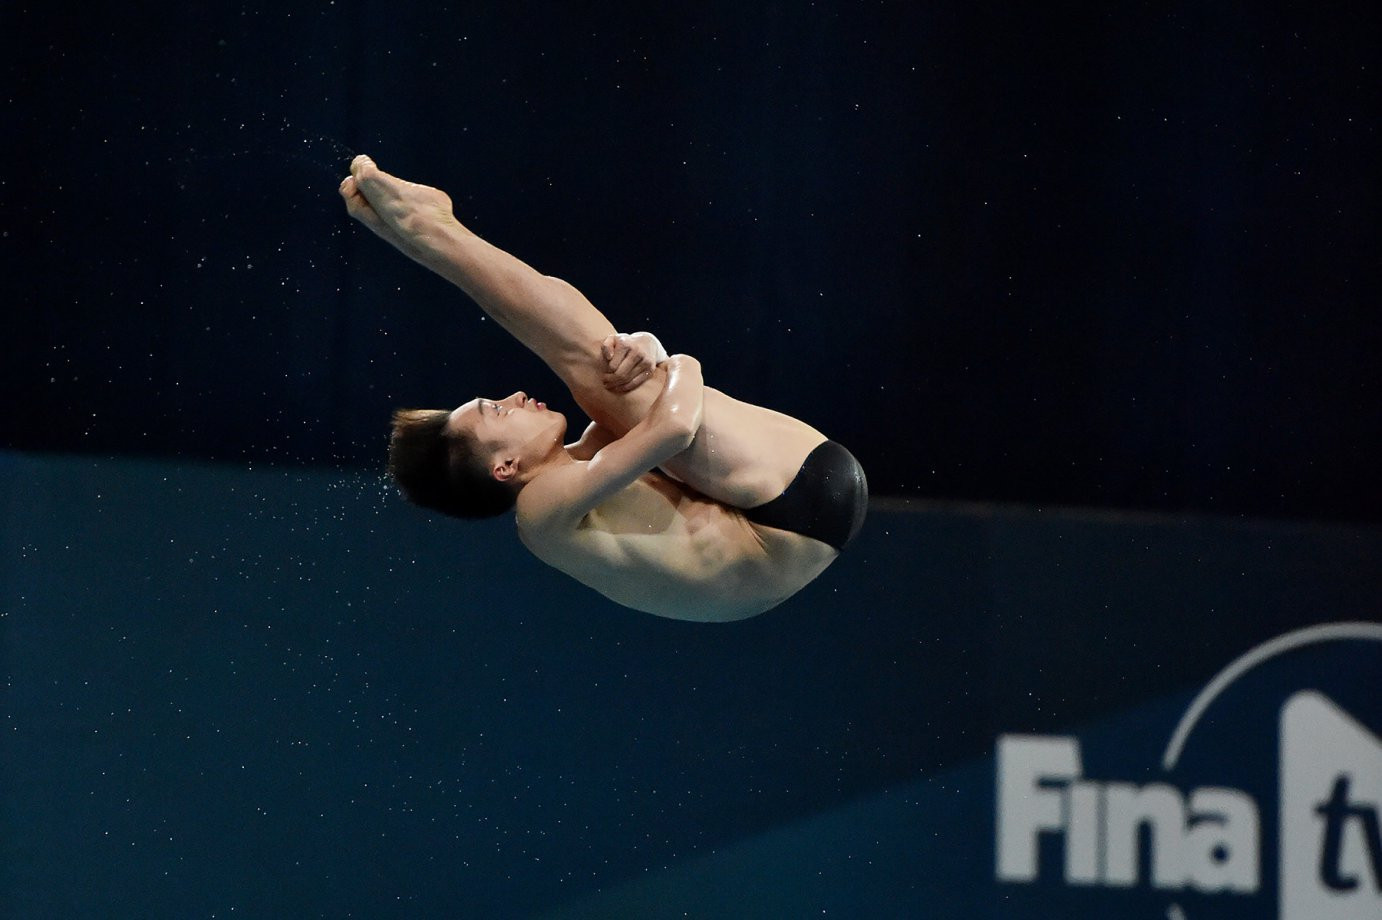 Lian Junjie added a 14th and final gold for China in the boys' A class platform event in the FINA World Junior Diving Championships in Kiev ©FINA